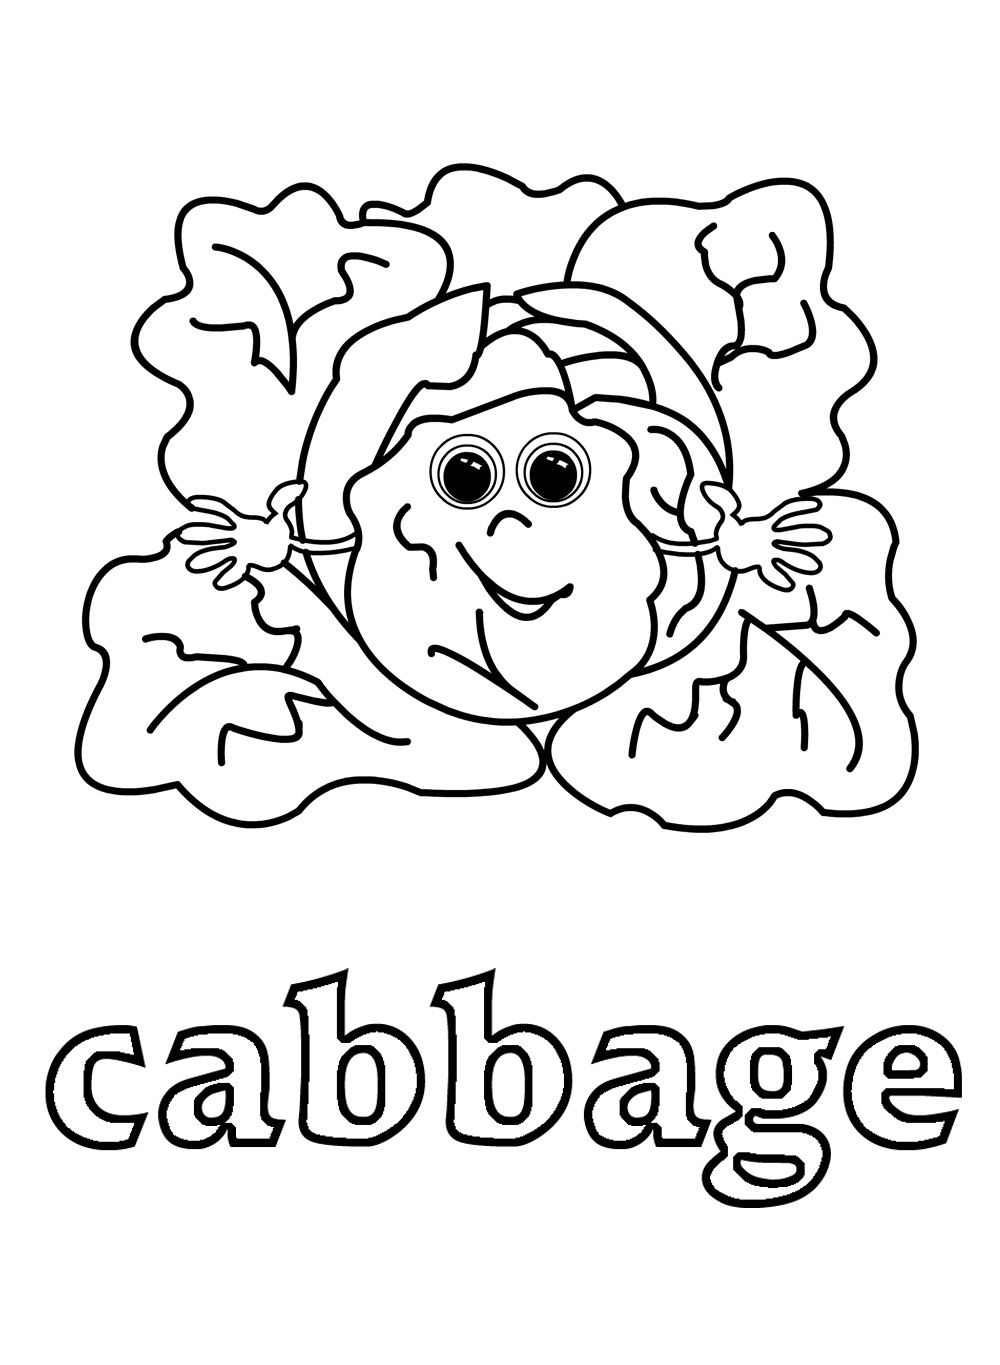 Cabbage Vegetable Coloring Pages